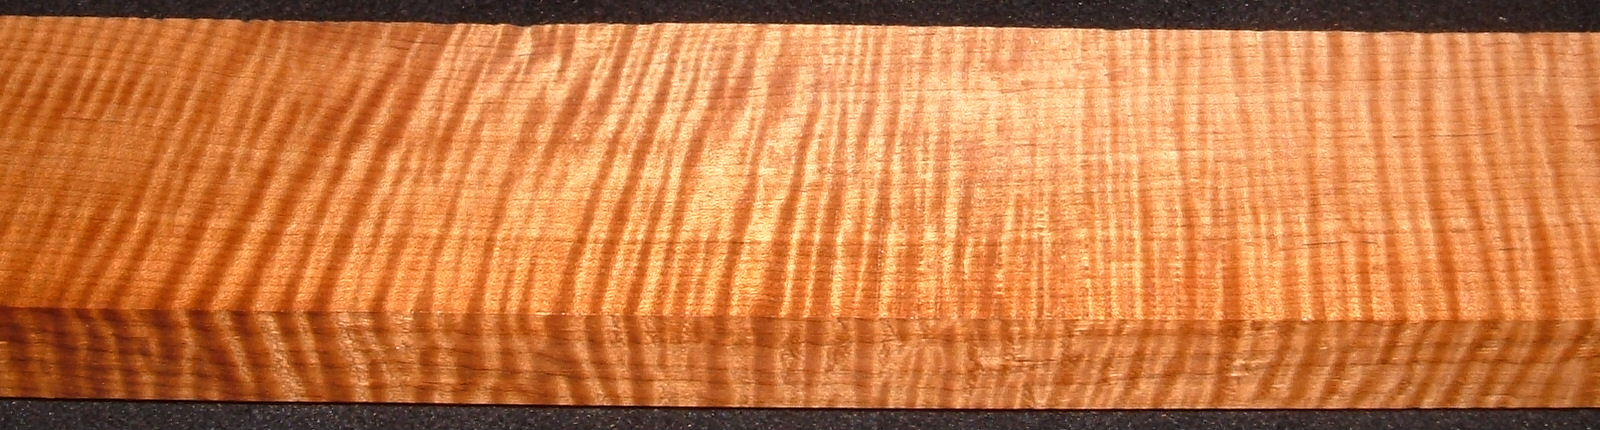 QRM2008-233, 1-1/8x2-7/8x44, Quartersawn Roasted Curly Maple